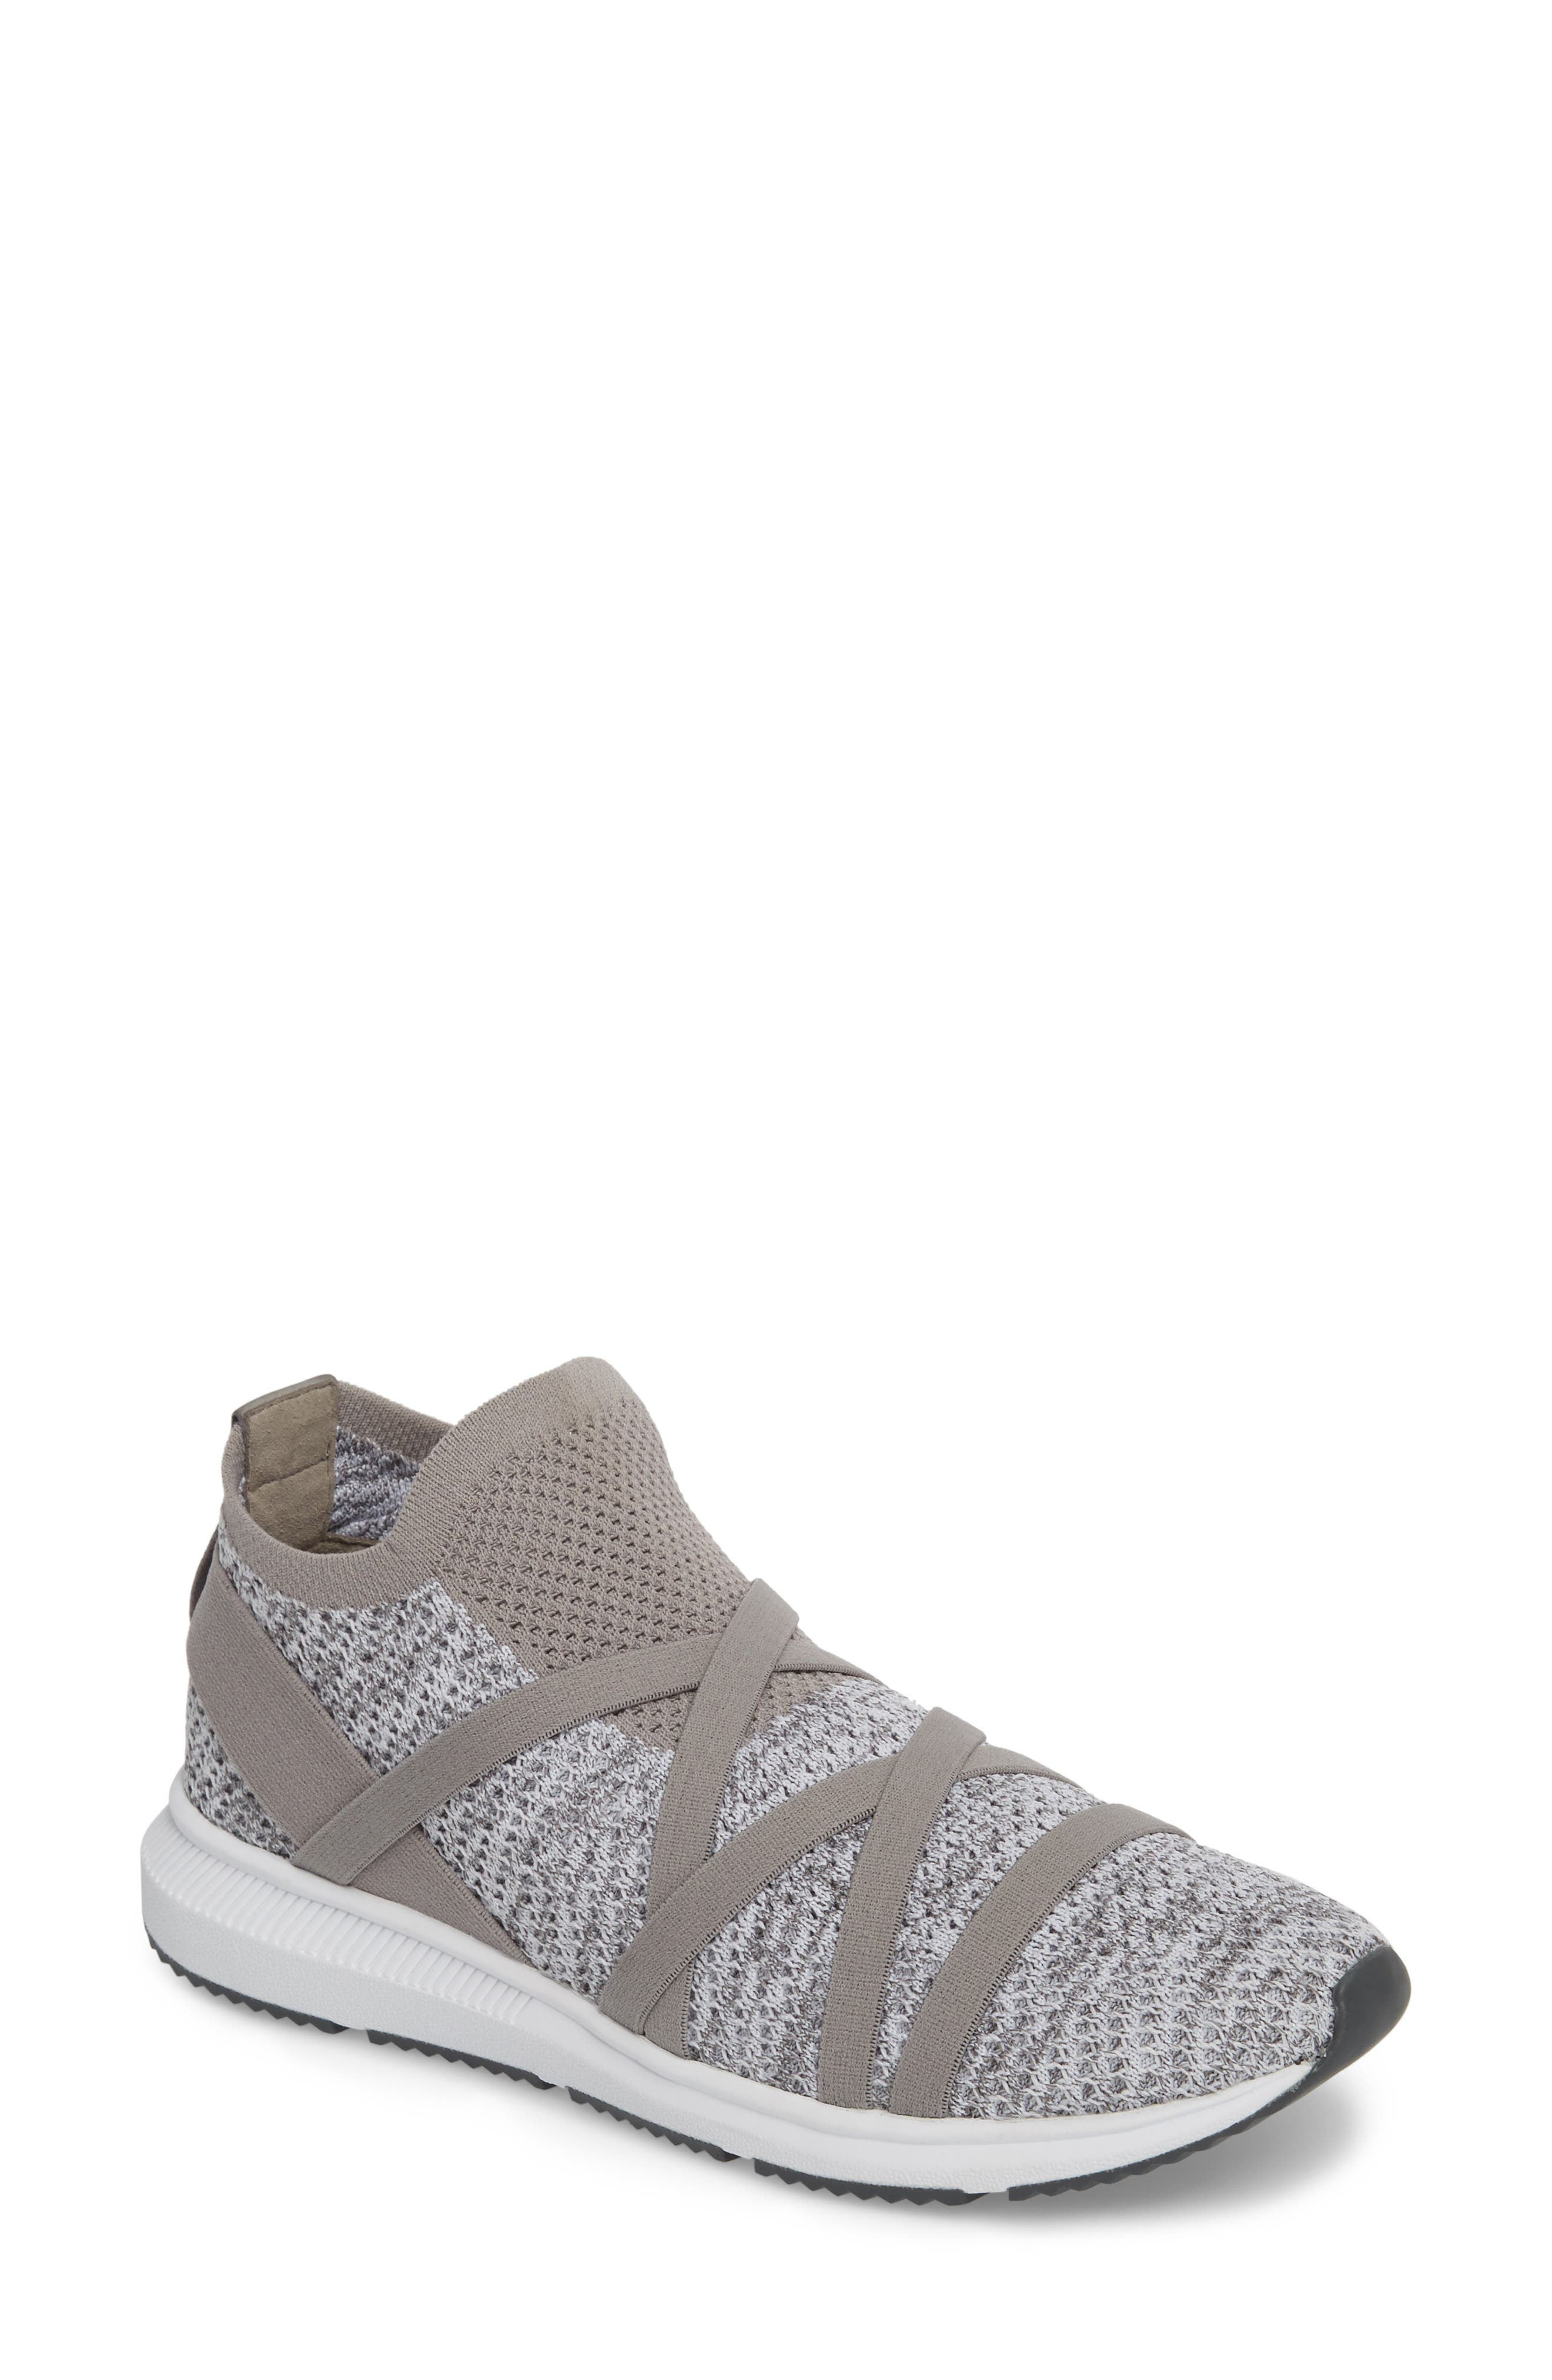 Eileen Fisher Women's Xanady Stretch Knit Slip-On Sneakers Free Shipping Best Prices Footlocker Online With Credit Card For Sale ZxjlTHyrhB